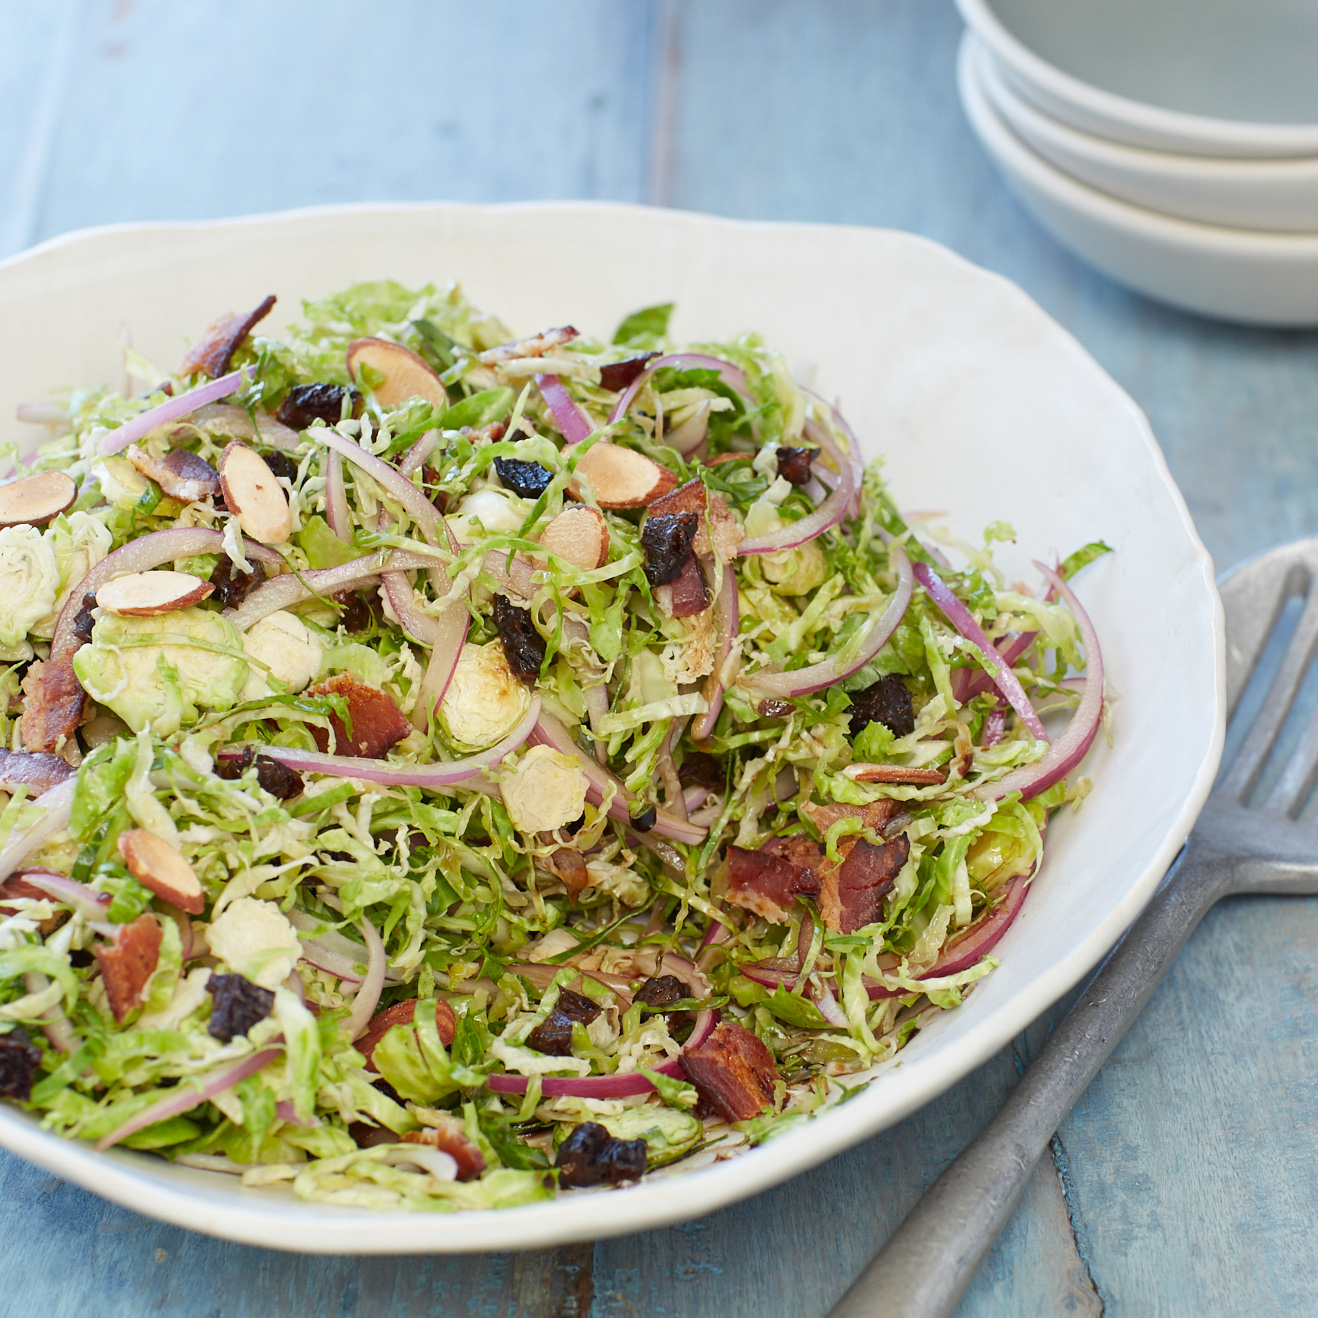 <p>Shaved Brussels sprouts make for a mild and crunchy alternative to a cabbage or kale salad. Bacon, balsamic vinegar, and prune juice concentrate bring richness and tang to the salad while diced prunes deliver texture and sweetness.</p>